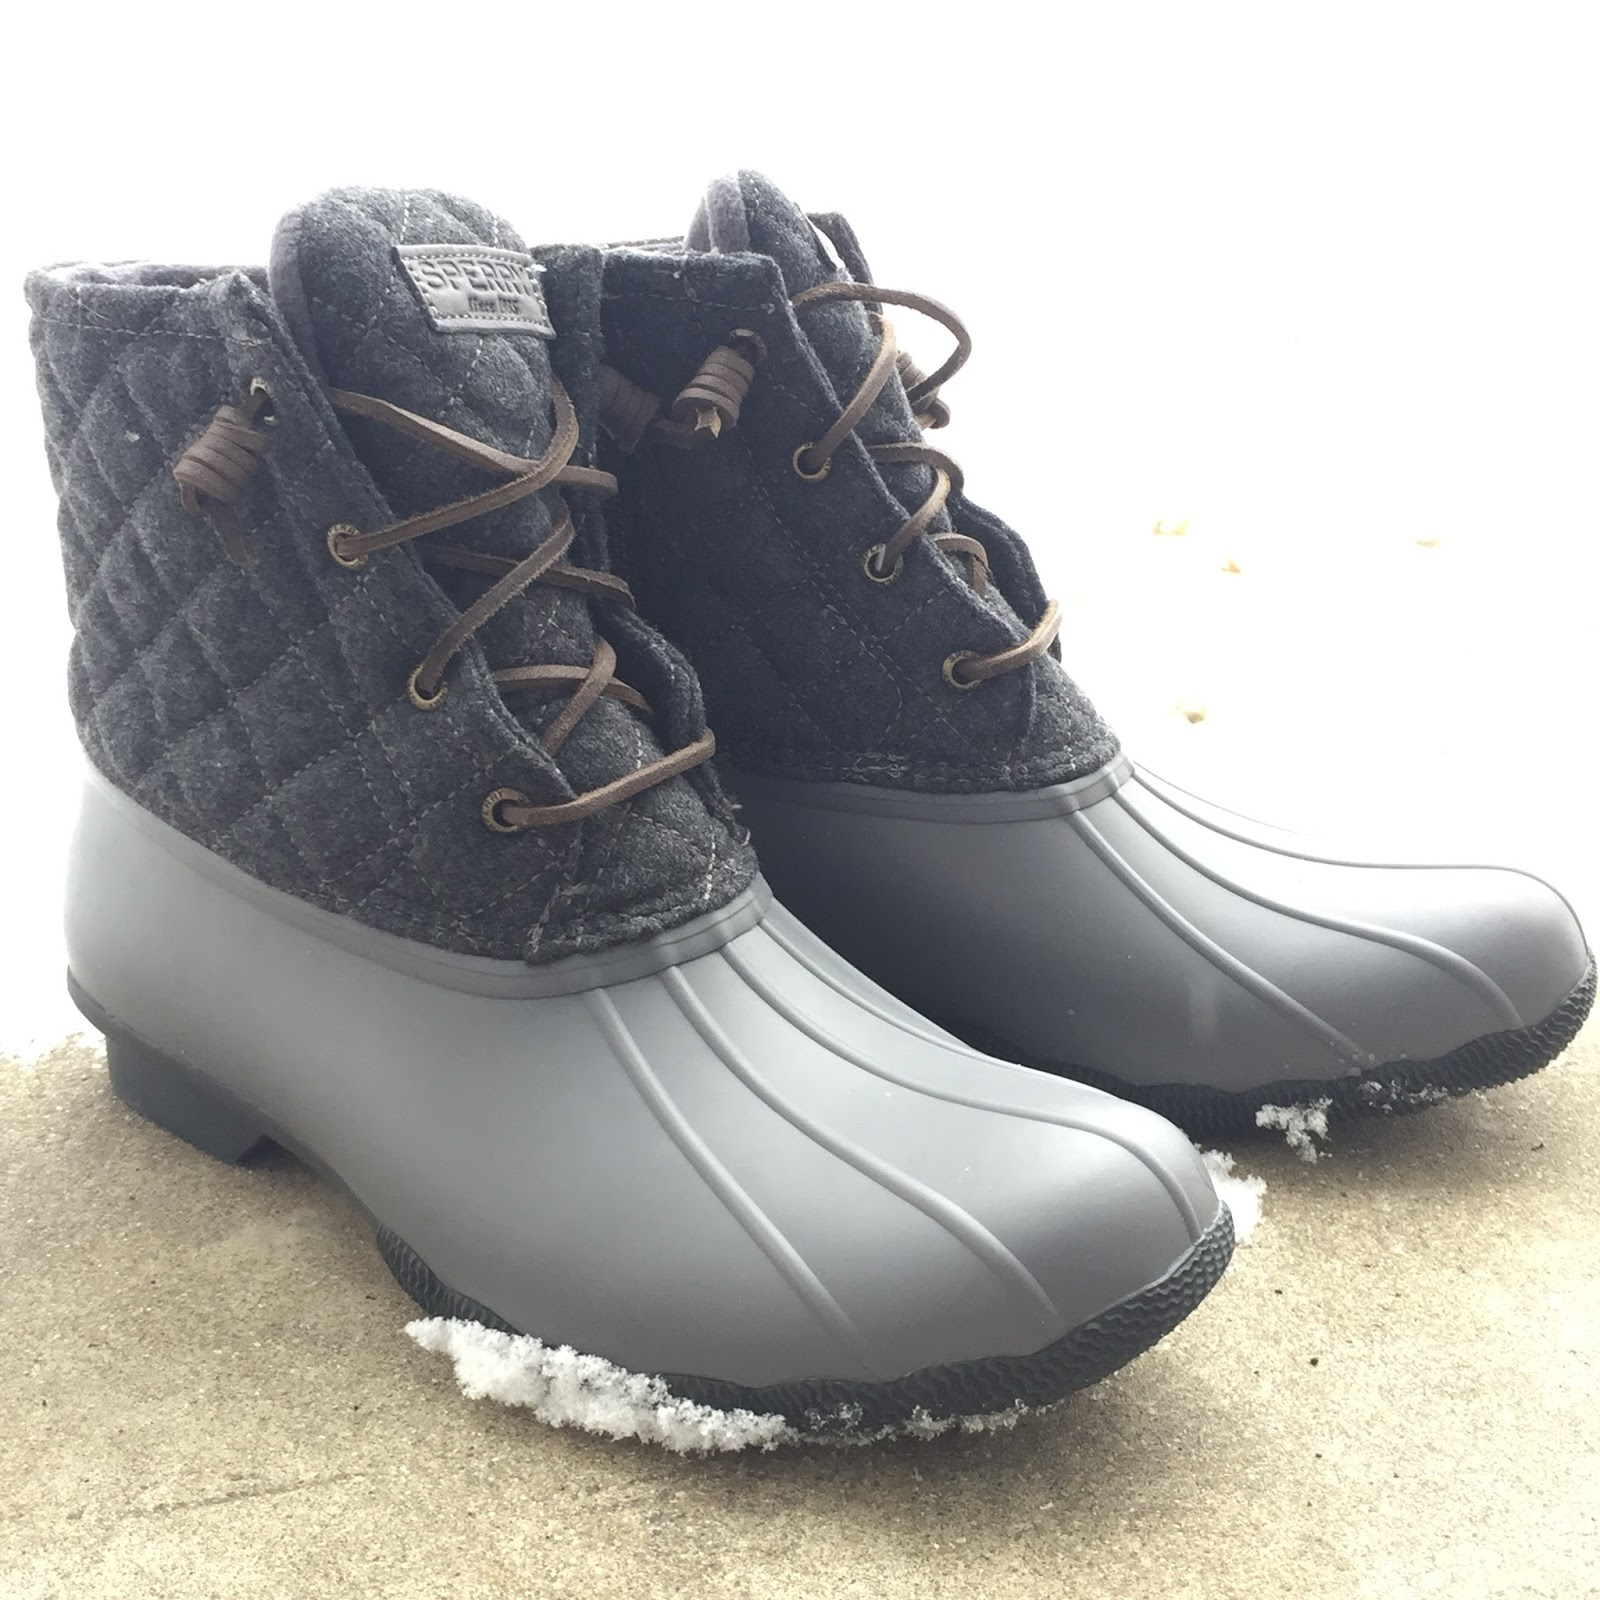 e597fe7b1f44 They were on sale for under  100 after Christmas so I was thrilled. Do you  have any duck boots  Kate Spade Kitchen